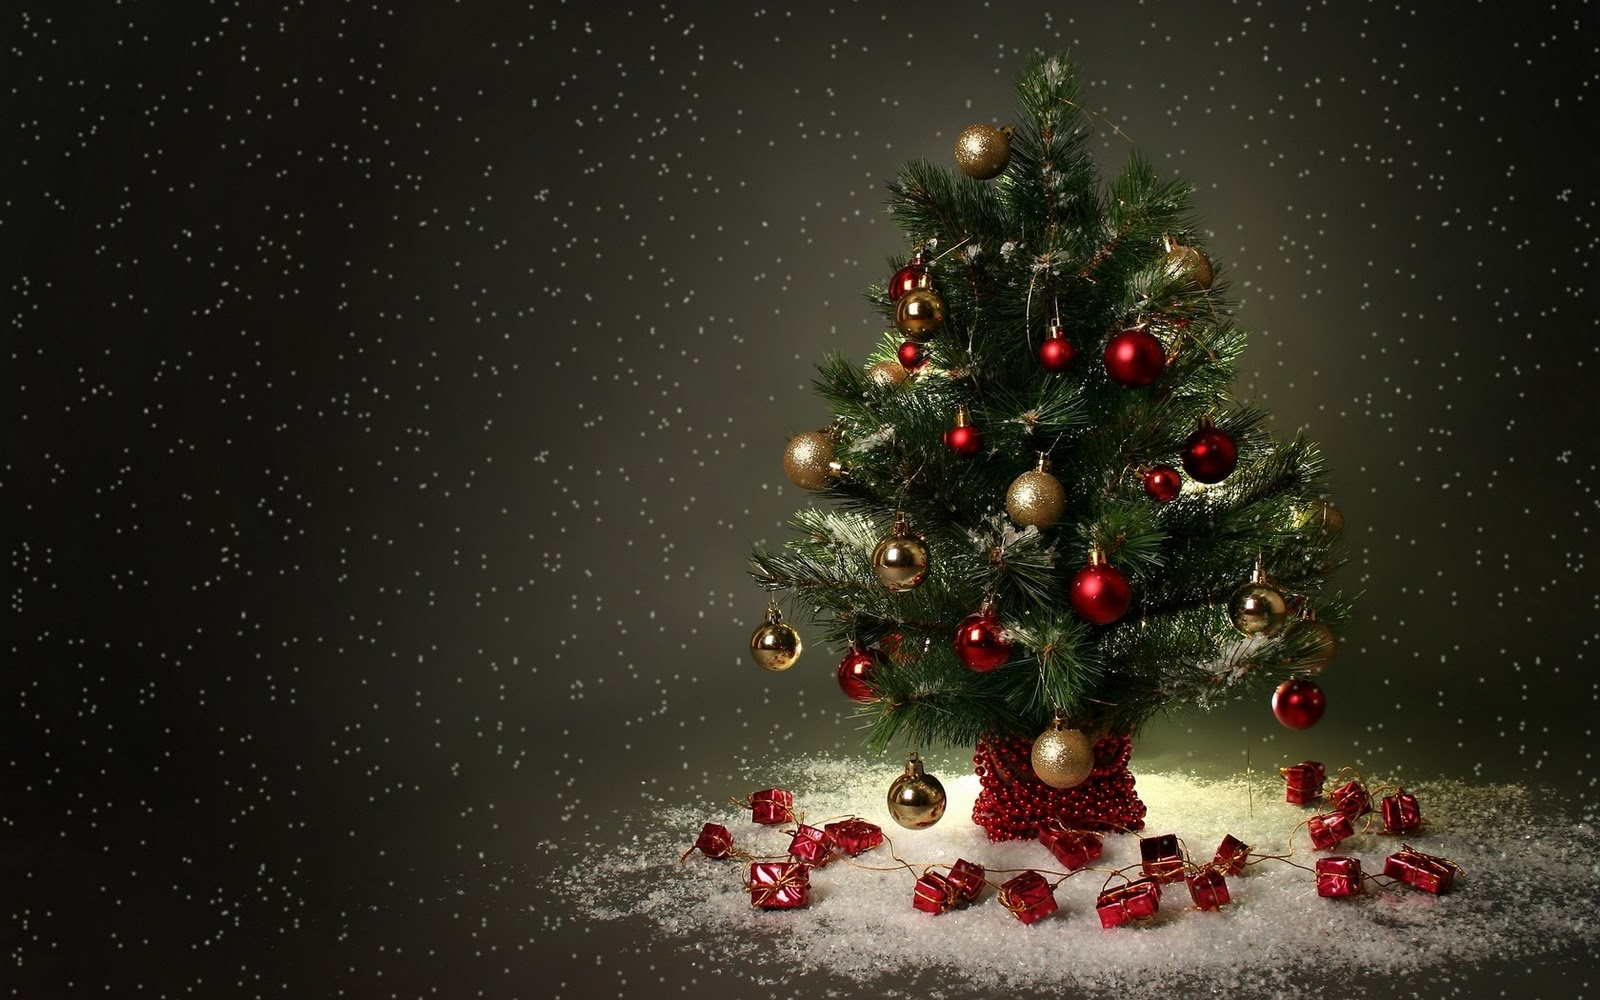 http://4.bp.blogspot.com/-RZbDWSJPNpM/Tt8OnFQpfTI/AAAAAAAAAeg/1qNTTWeEK5Q/s1600/Little%20Christmas%20Tree%20Gifts%20HD%20Wallpaper%20-%20UniqueWalls.Blogspot.Com.jpg